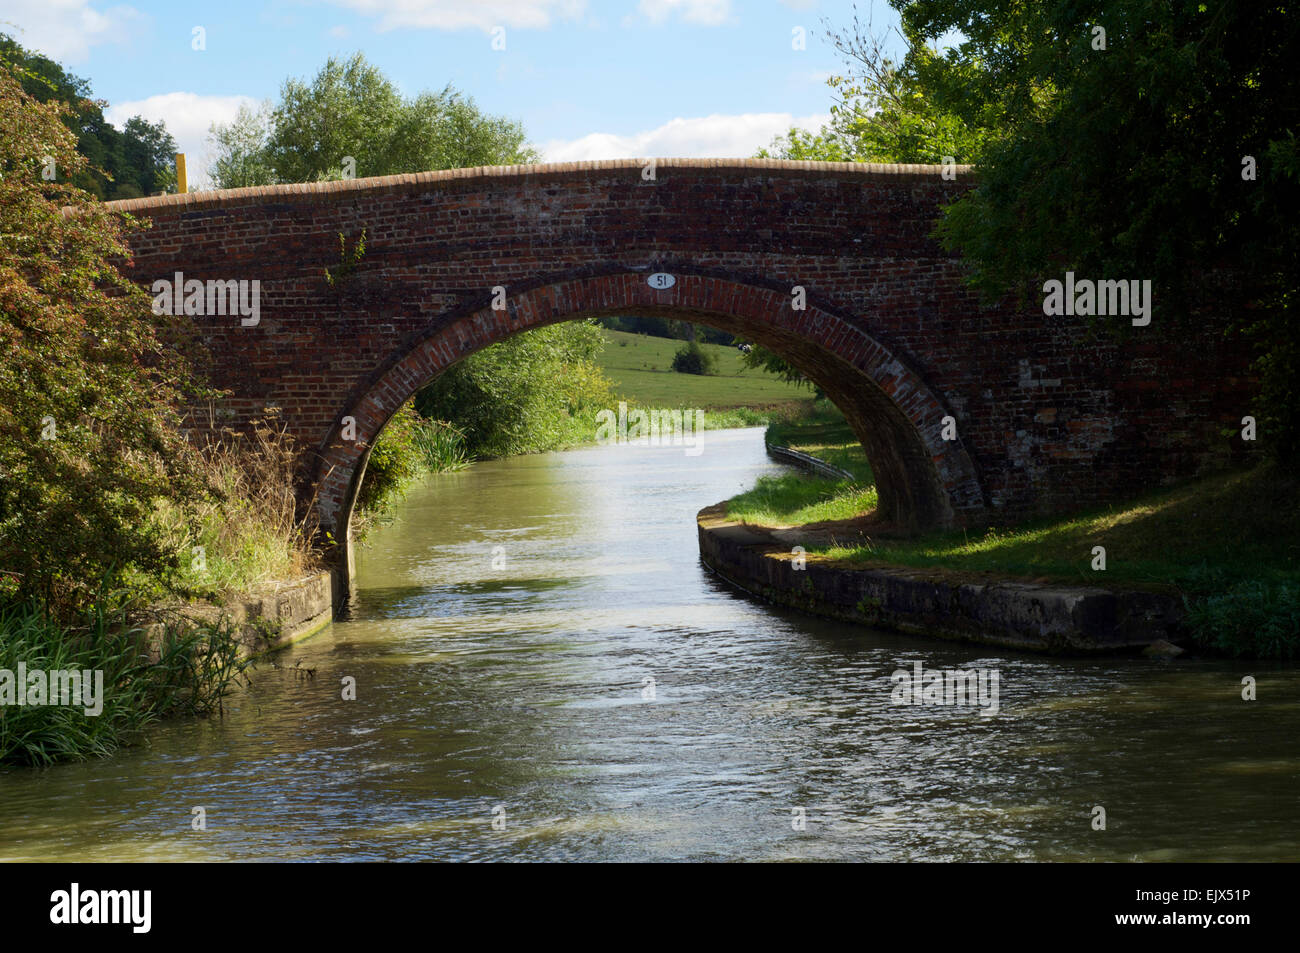 Canal bridge in the United Kingdom on a sunny day, in summer, in the English countryside. - Stock Image